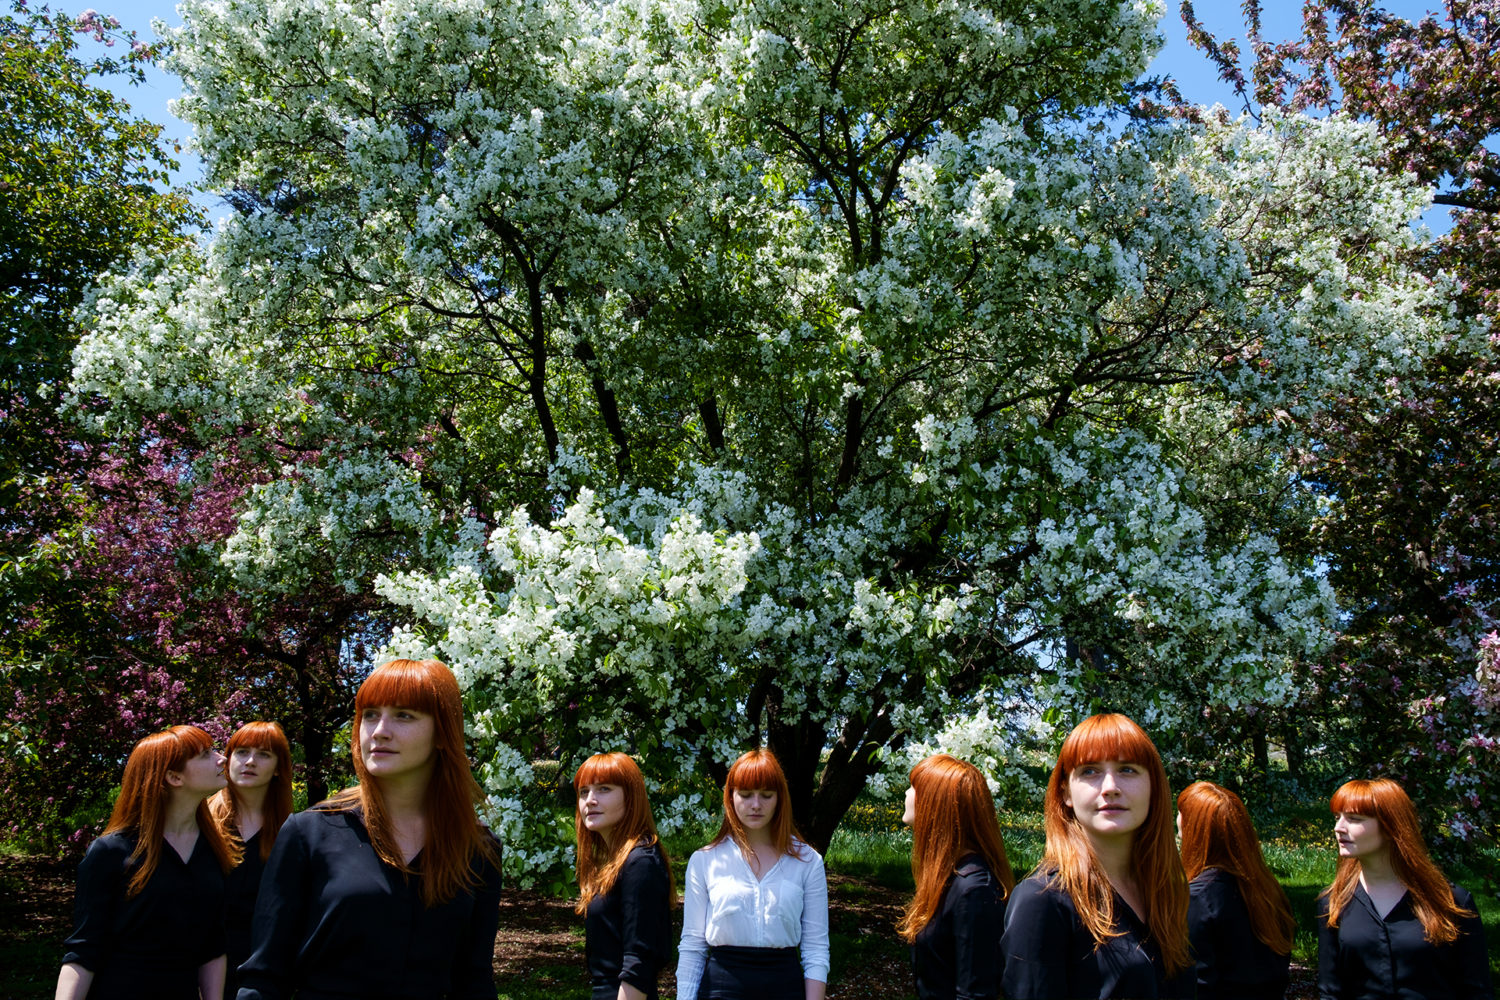 Solitarius - A red haired women standing underneith Cherry Blossoms in white. Same red haired women in black looking around.